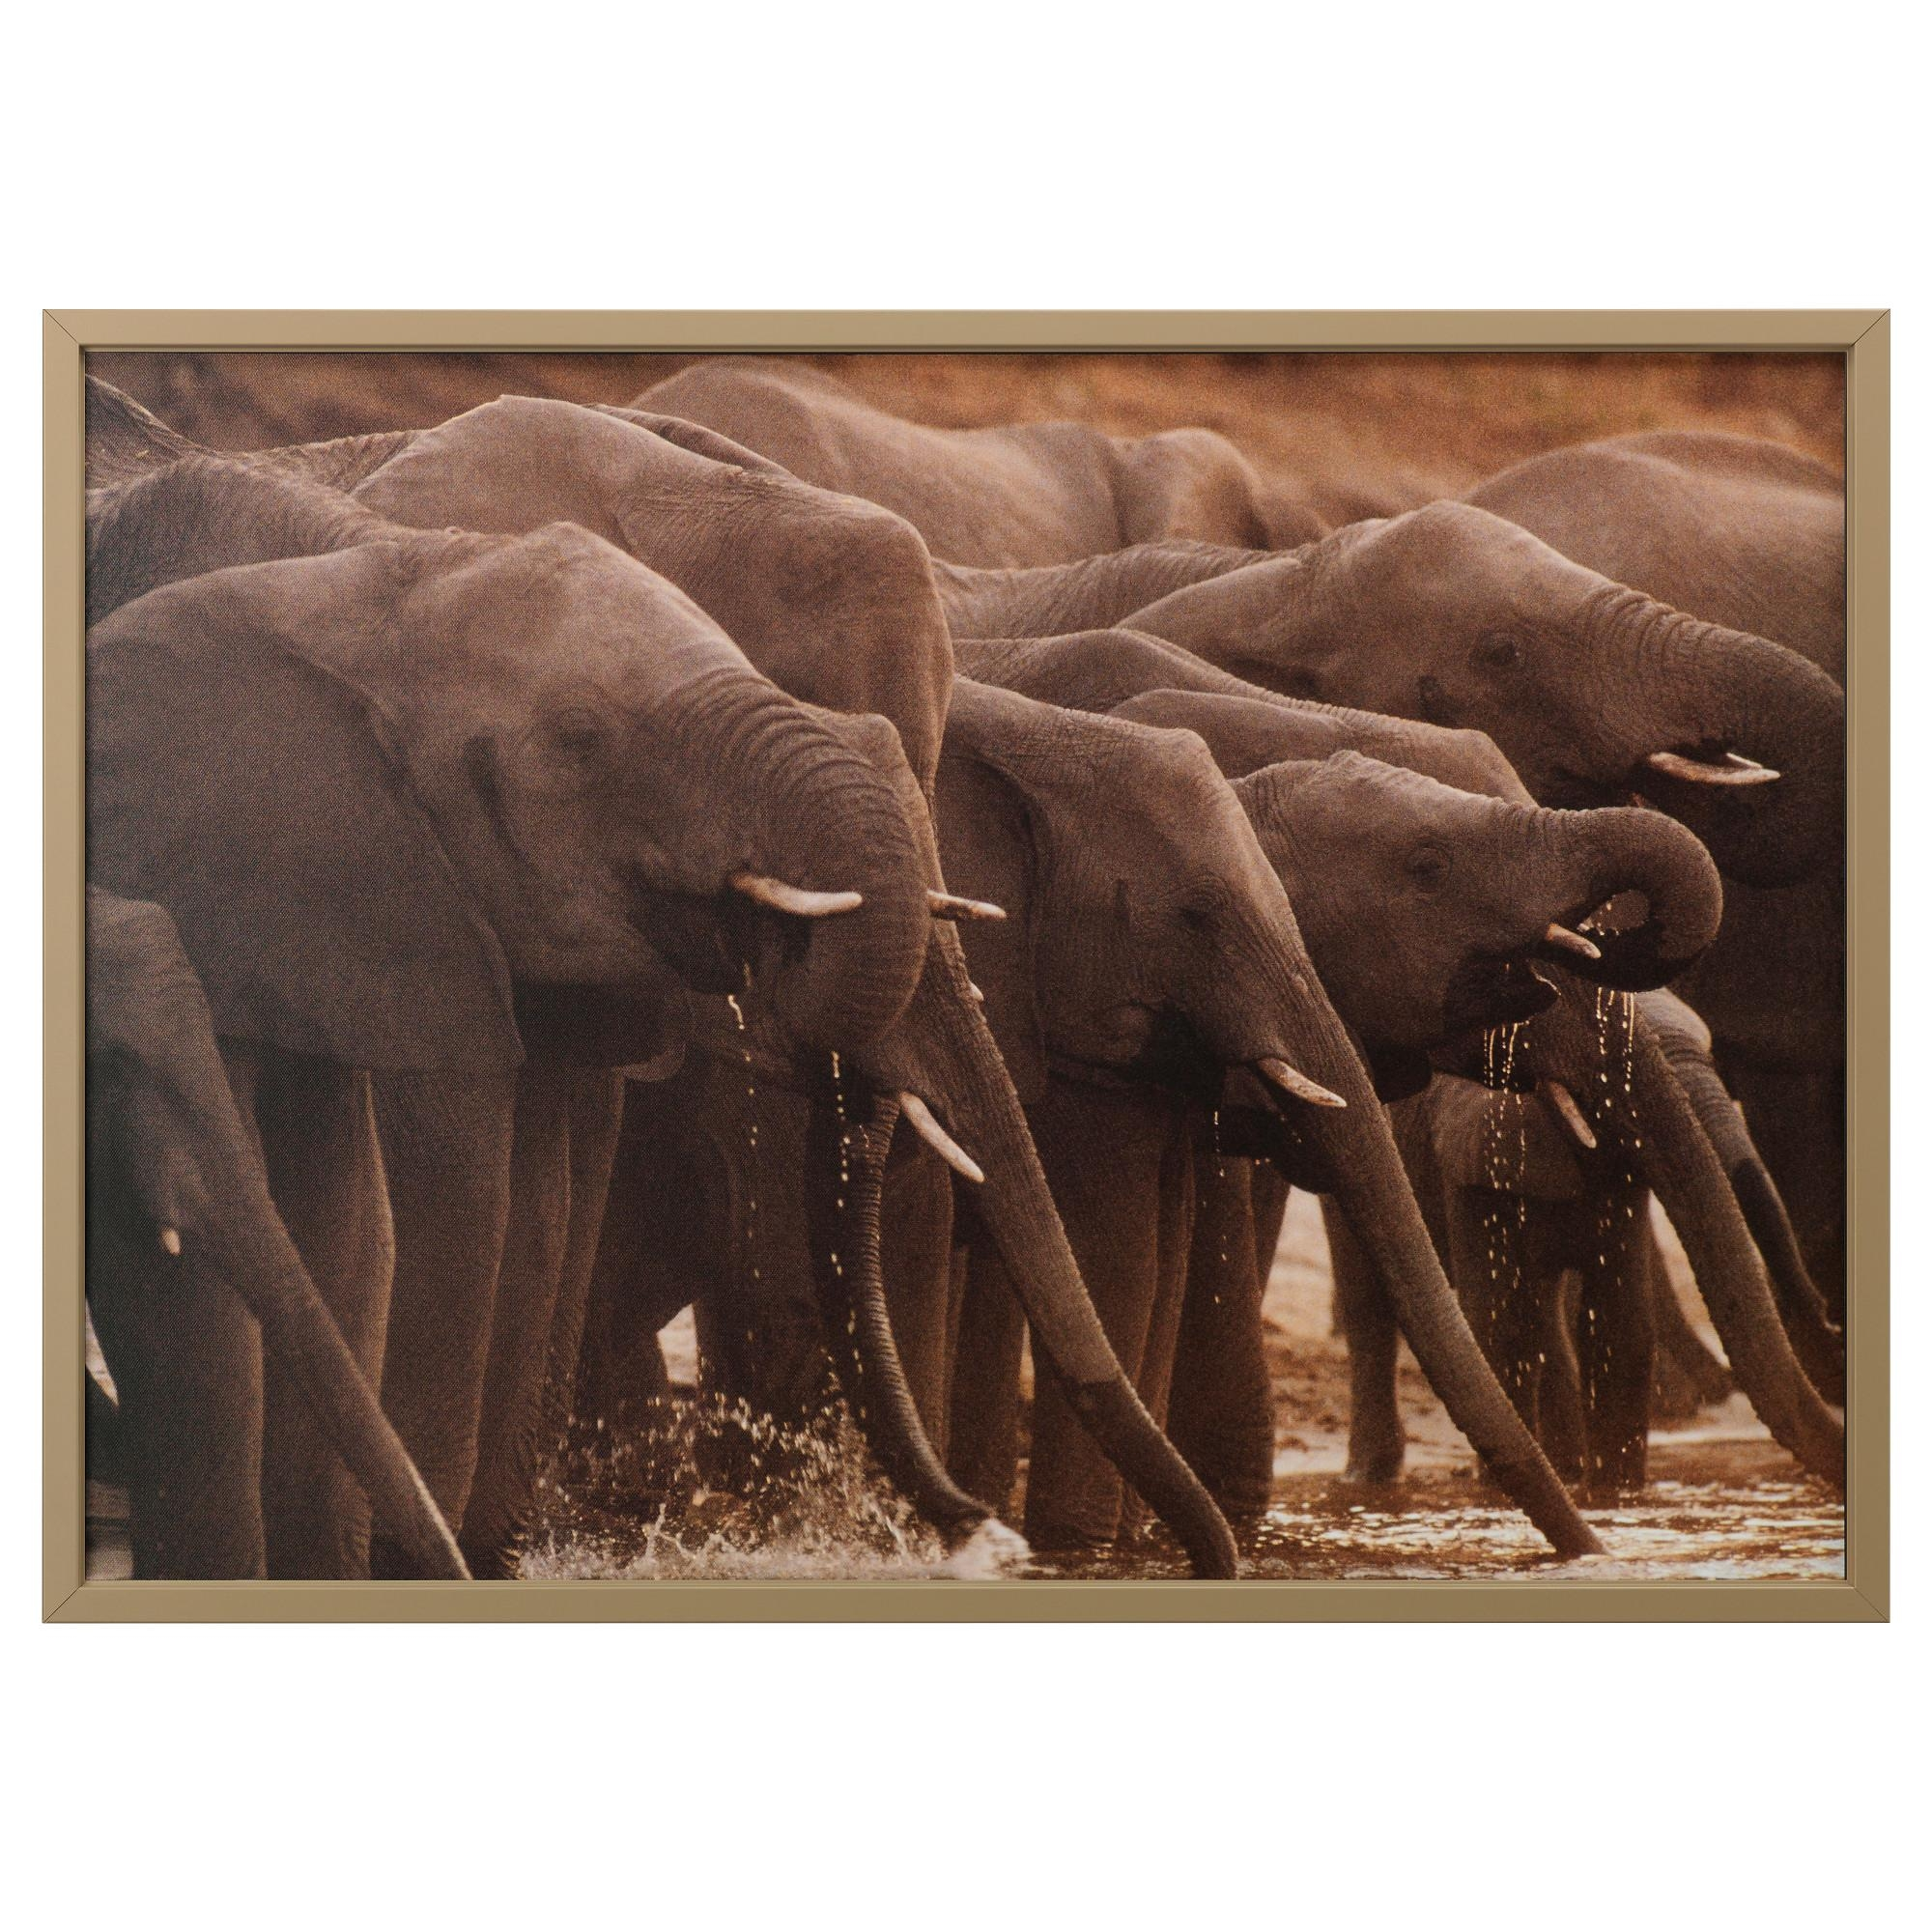 Canvas Prints & Art – Framed Pictures – Ikea Pertaining To Ikea Giant Wall Art (Image 4 of 20)